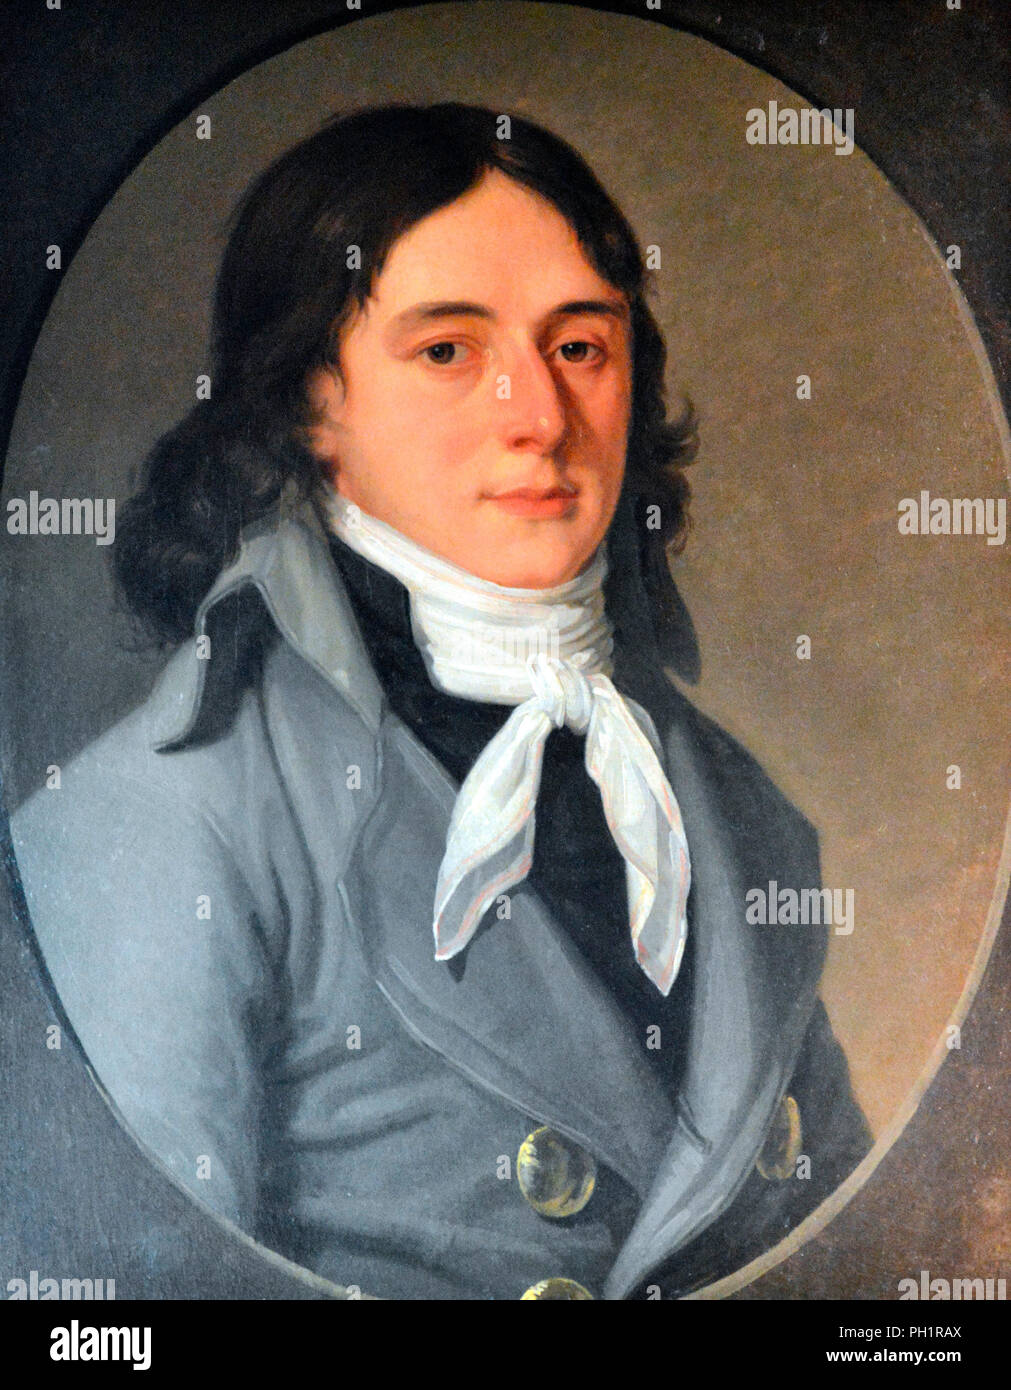 Camille Desmoulins - was a journalist and politician who played an important role in the French Revolution. - Stock Image